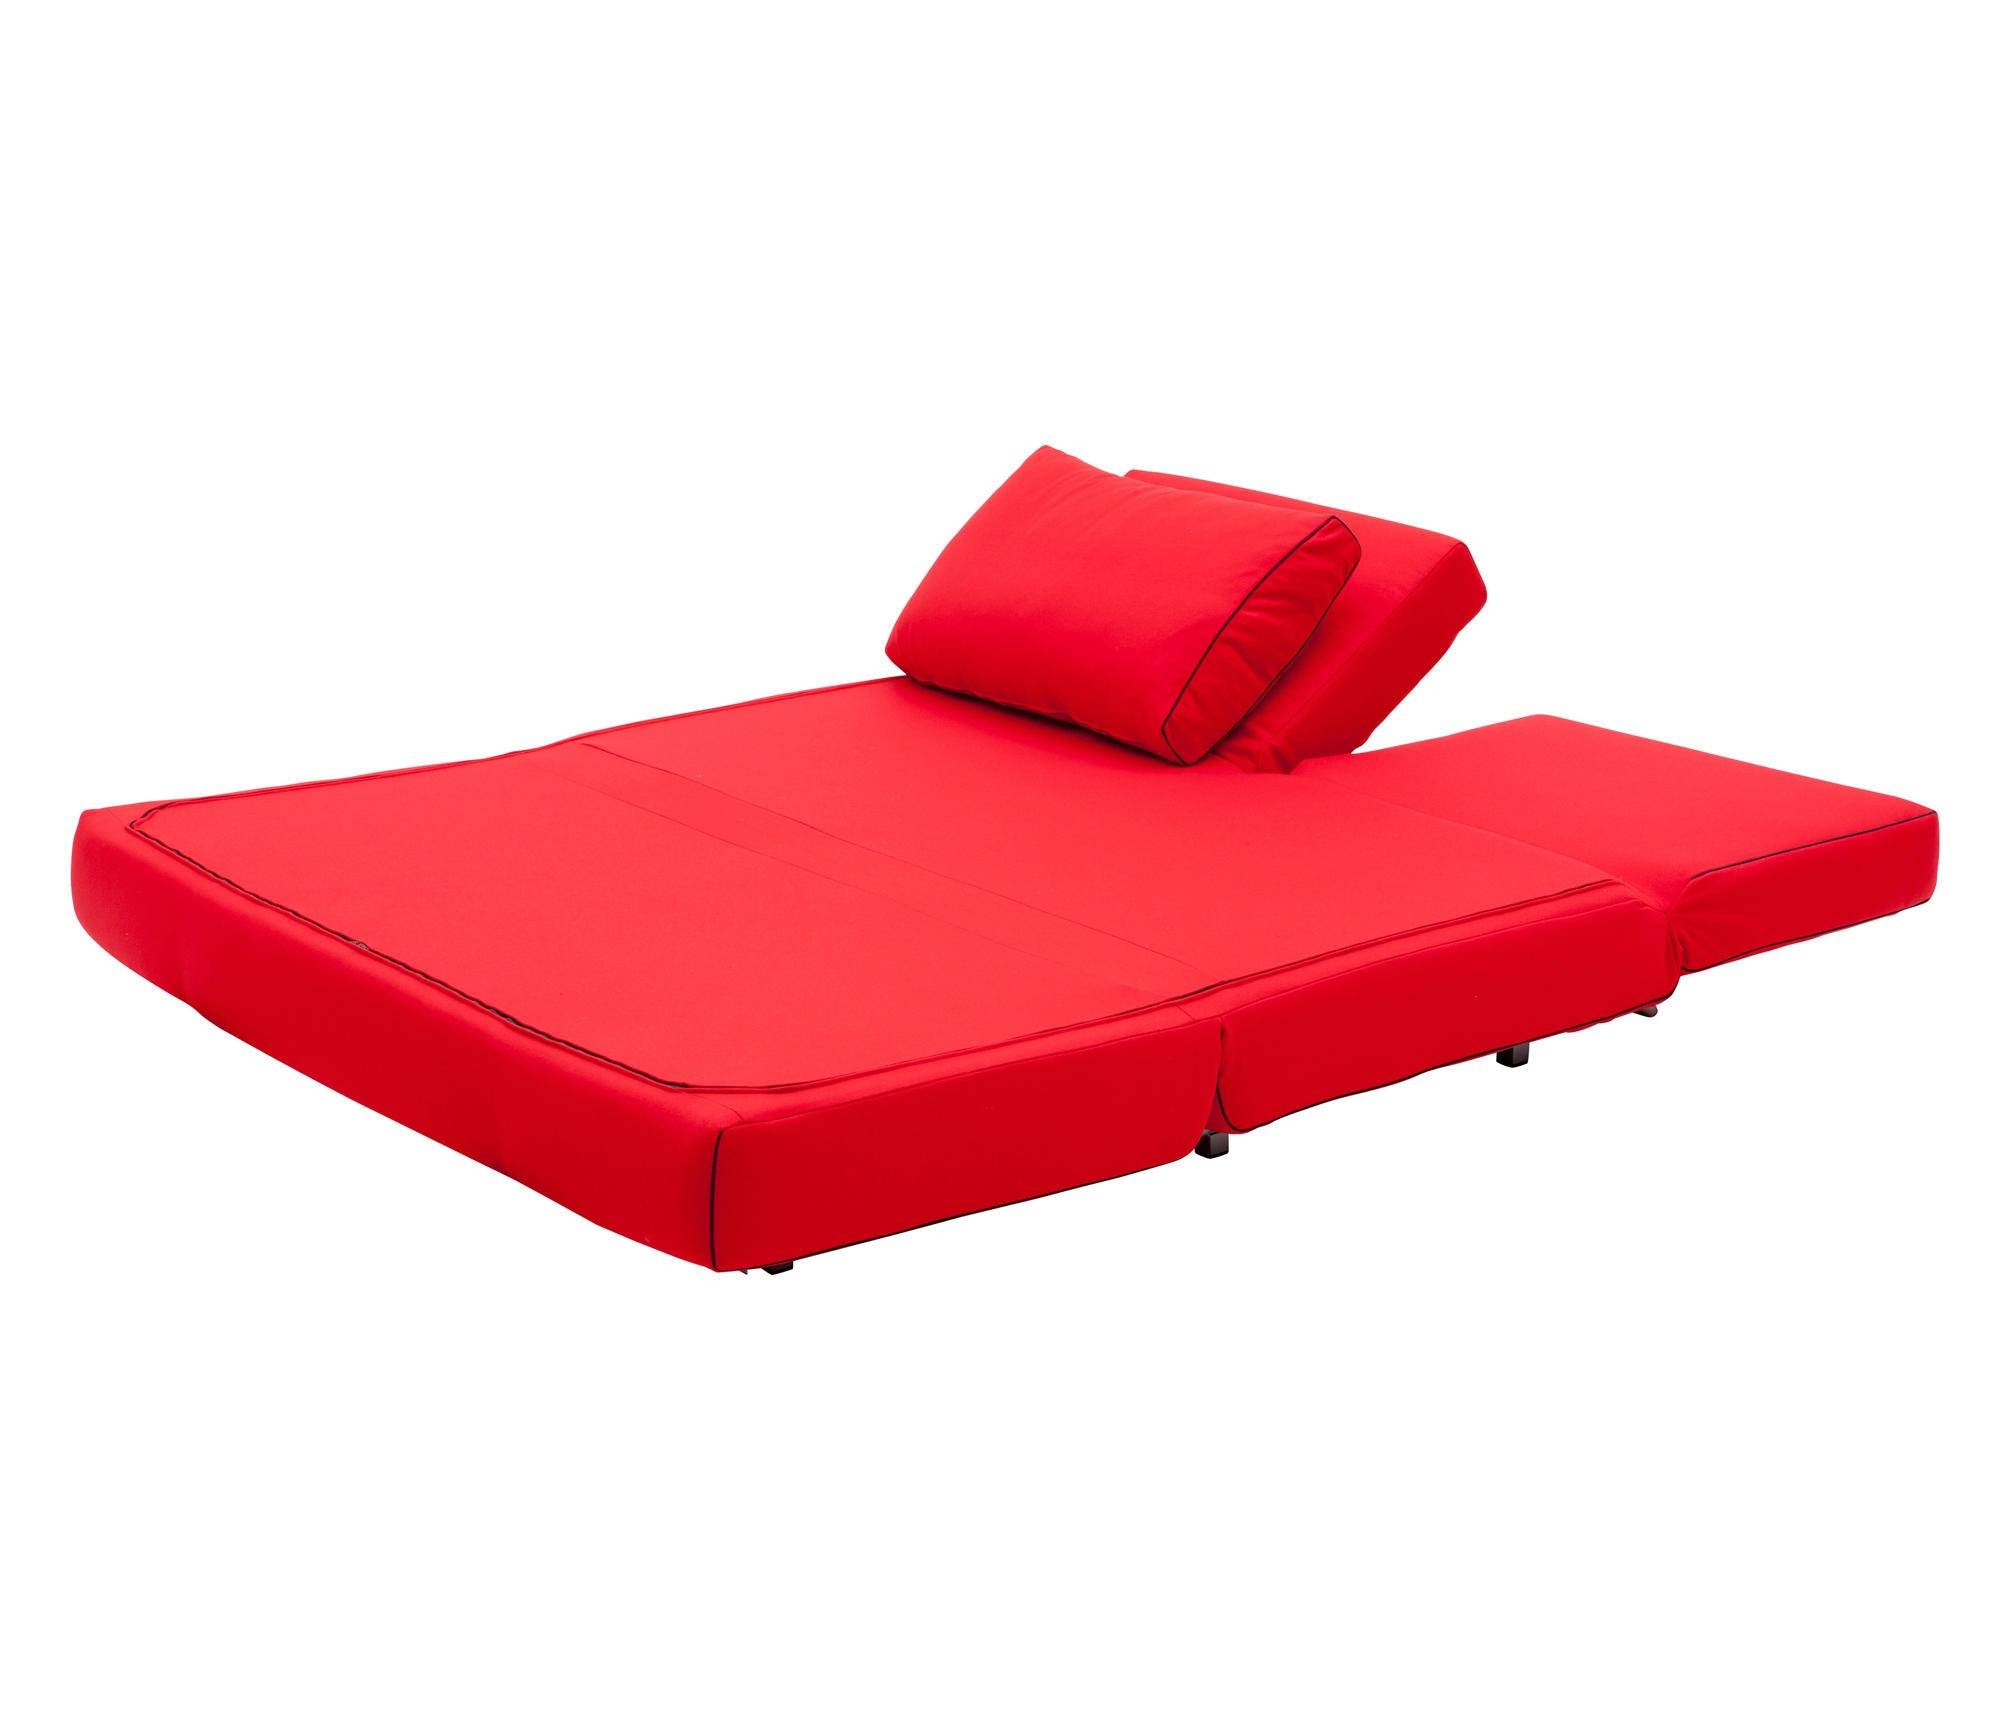 City Sofa – Sofa Beds From Softline A/s | Architonic With Regard To City Sofa Beds (View 6 of 30)